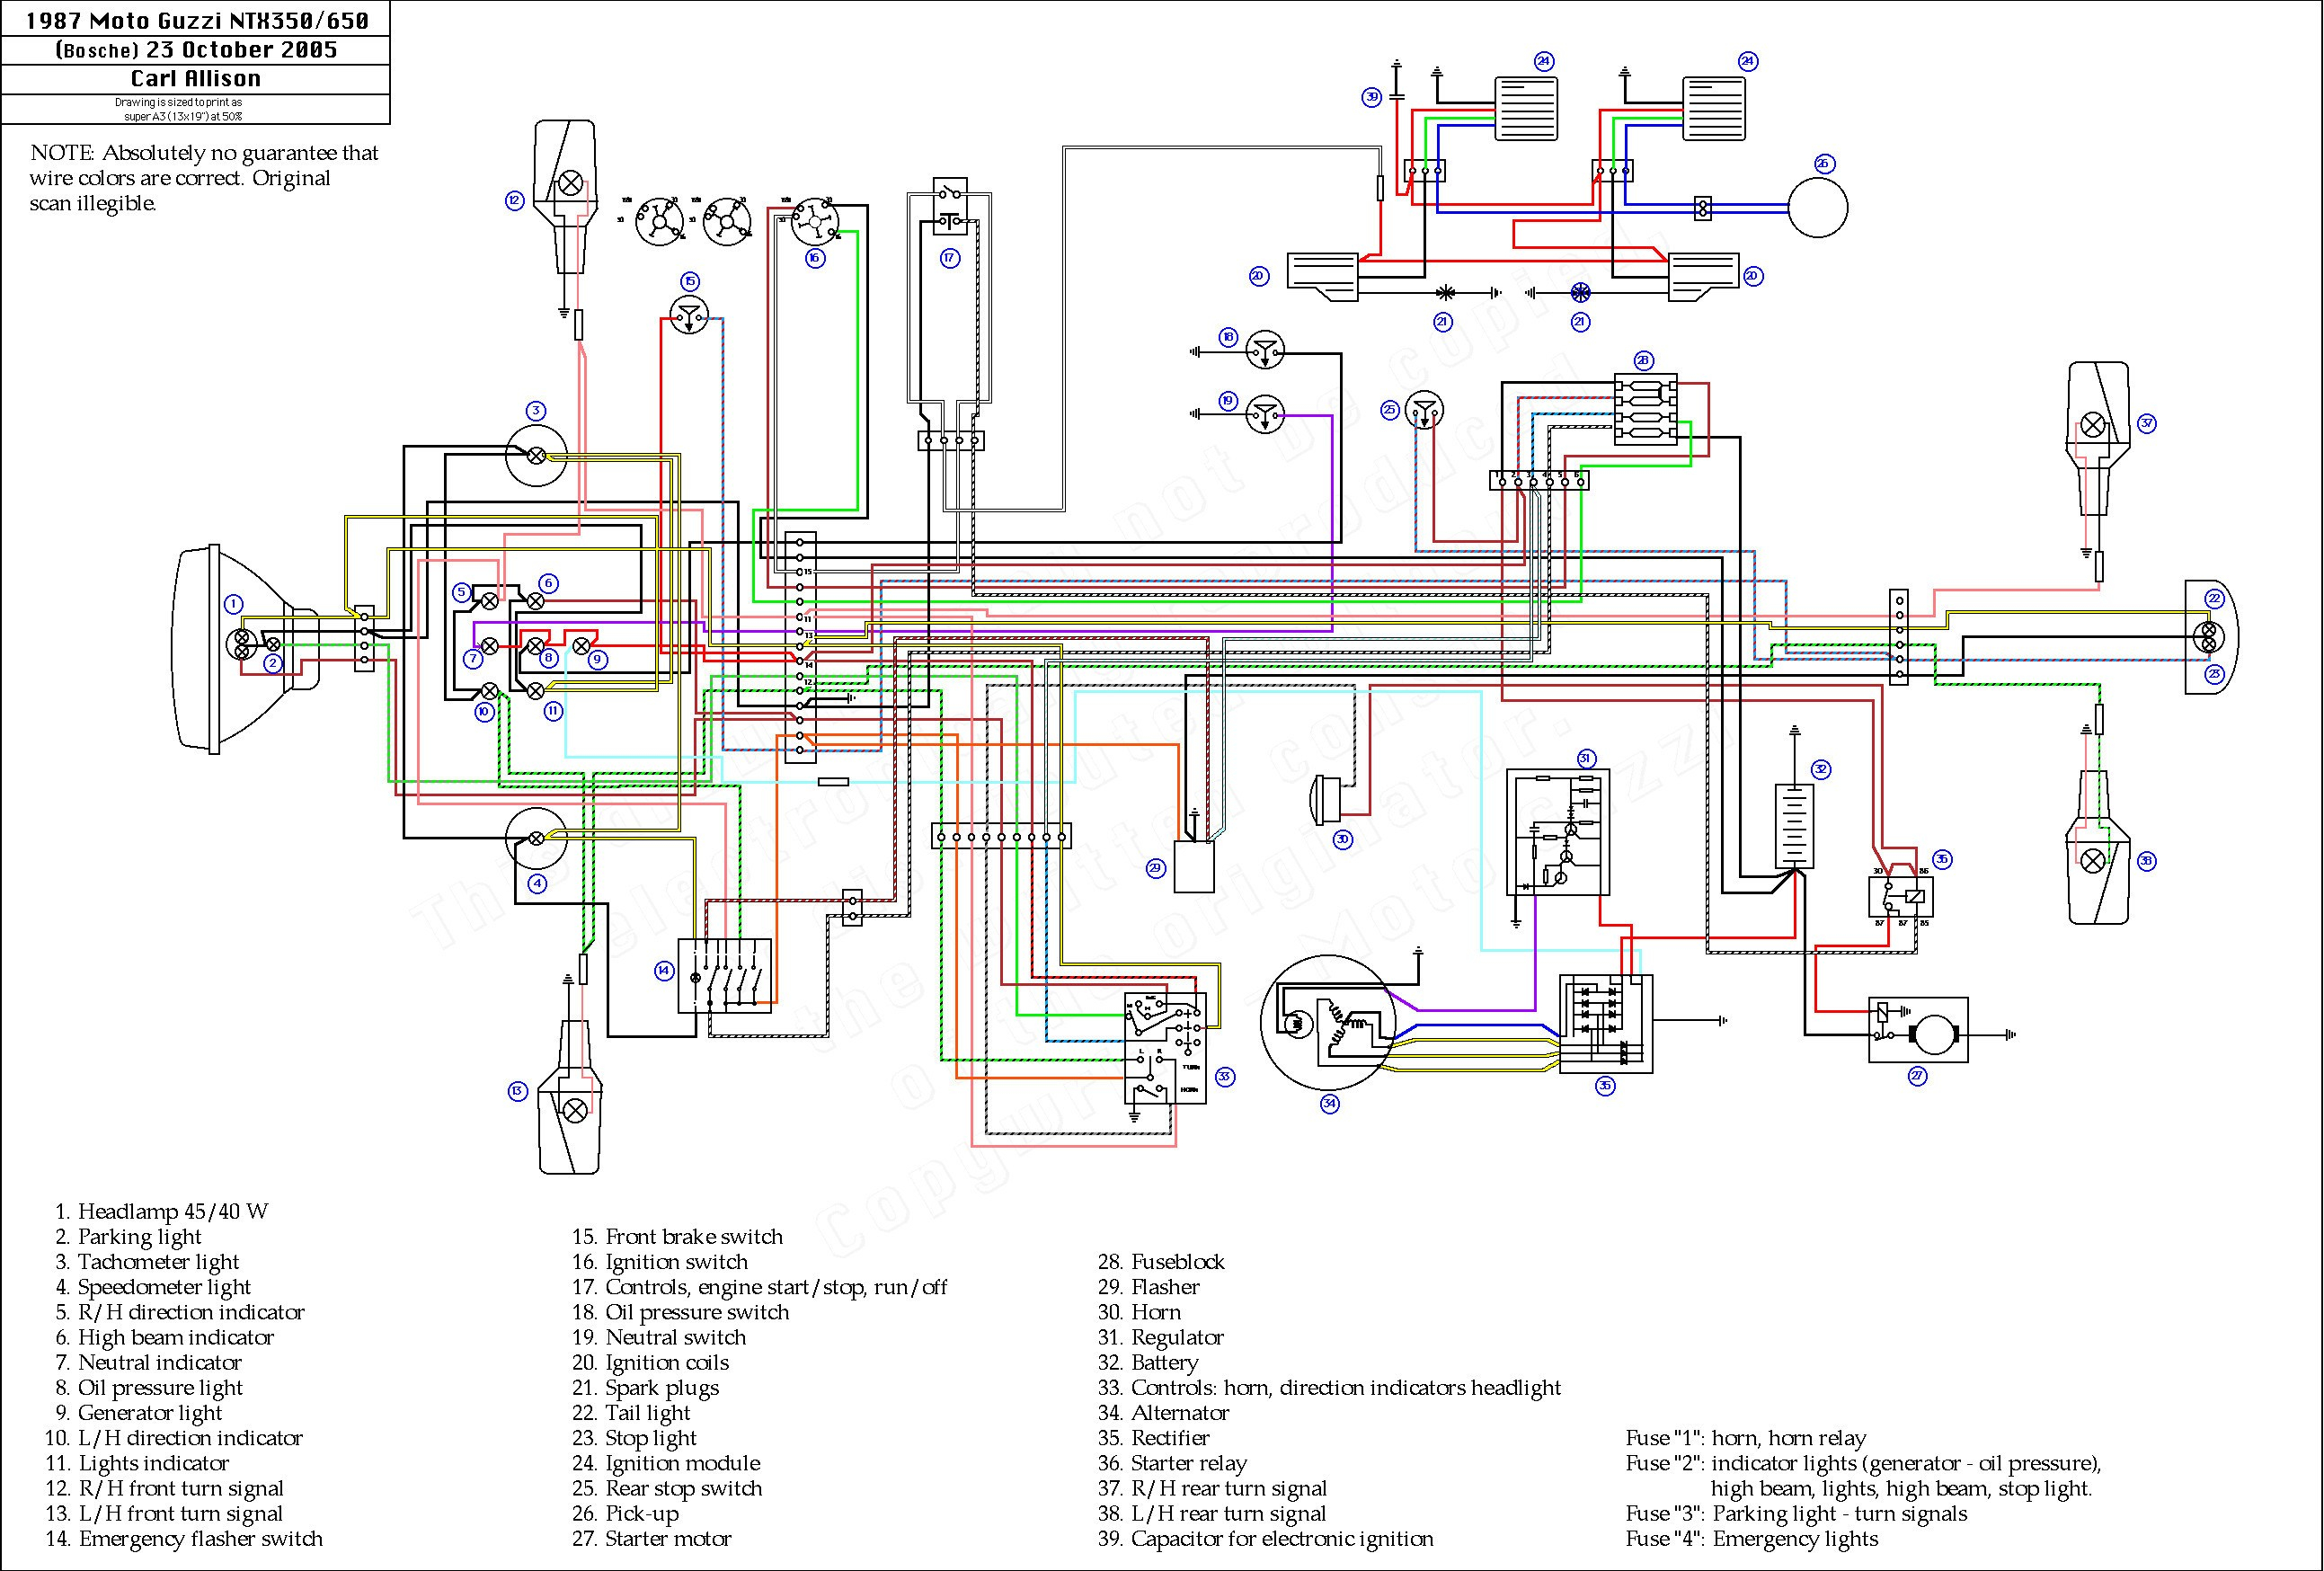 diagram] 2000 yamaha warrior 350 wiring diagram full version hd quality  wiring diagram - theiphonerepairguy.rapfrance.fr  database design tool